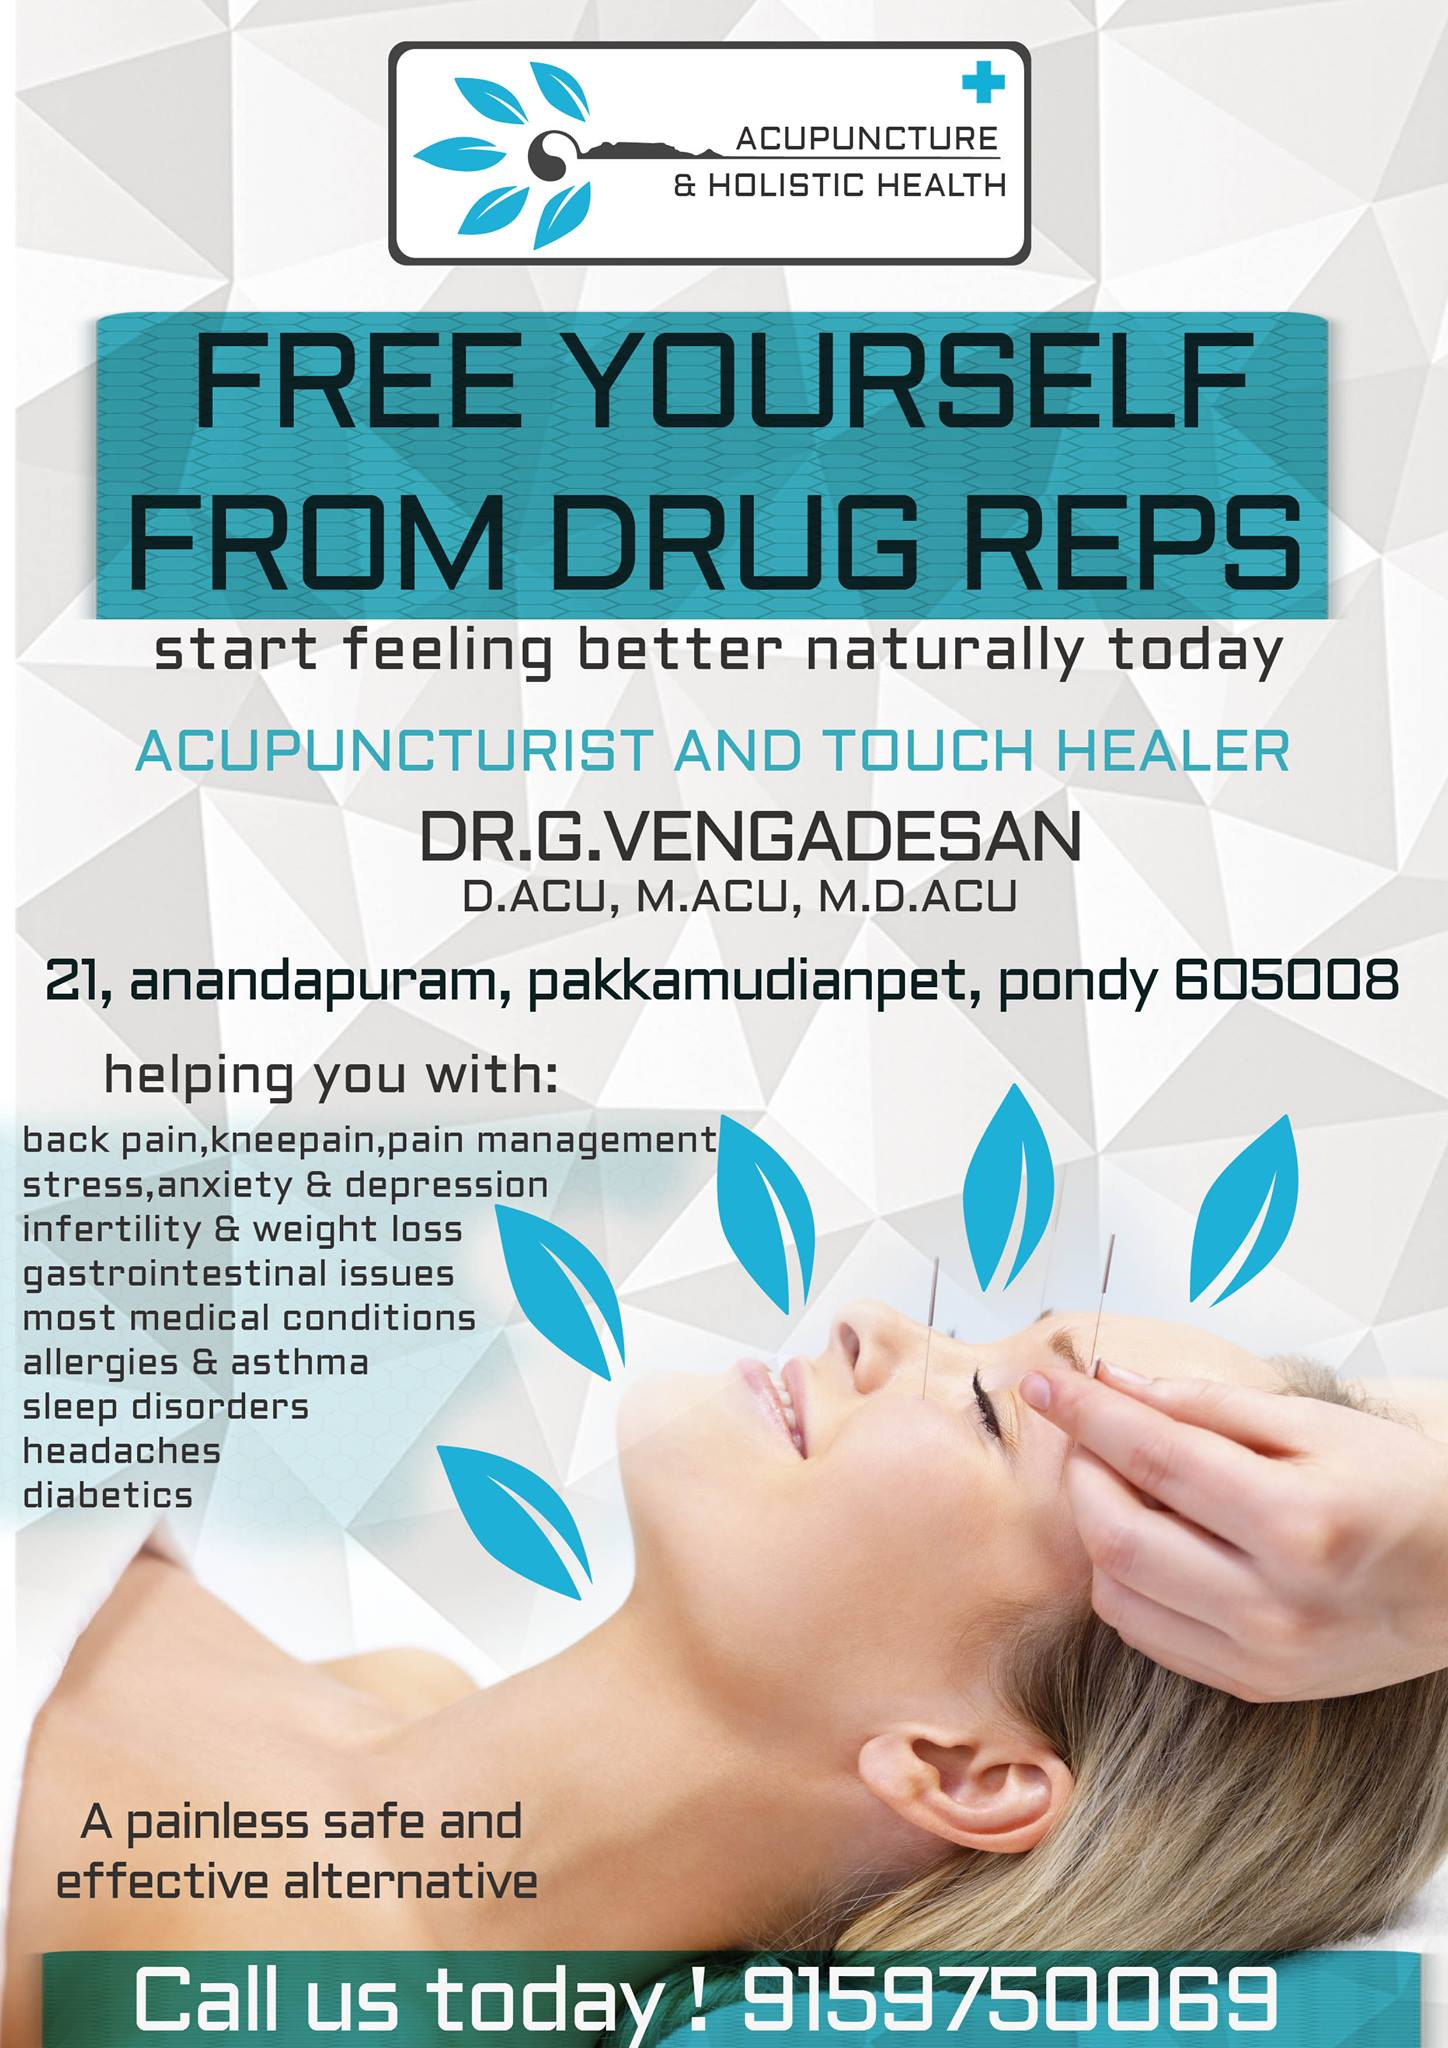 Acupuncture hospital flyer design